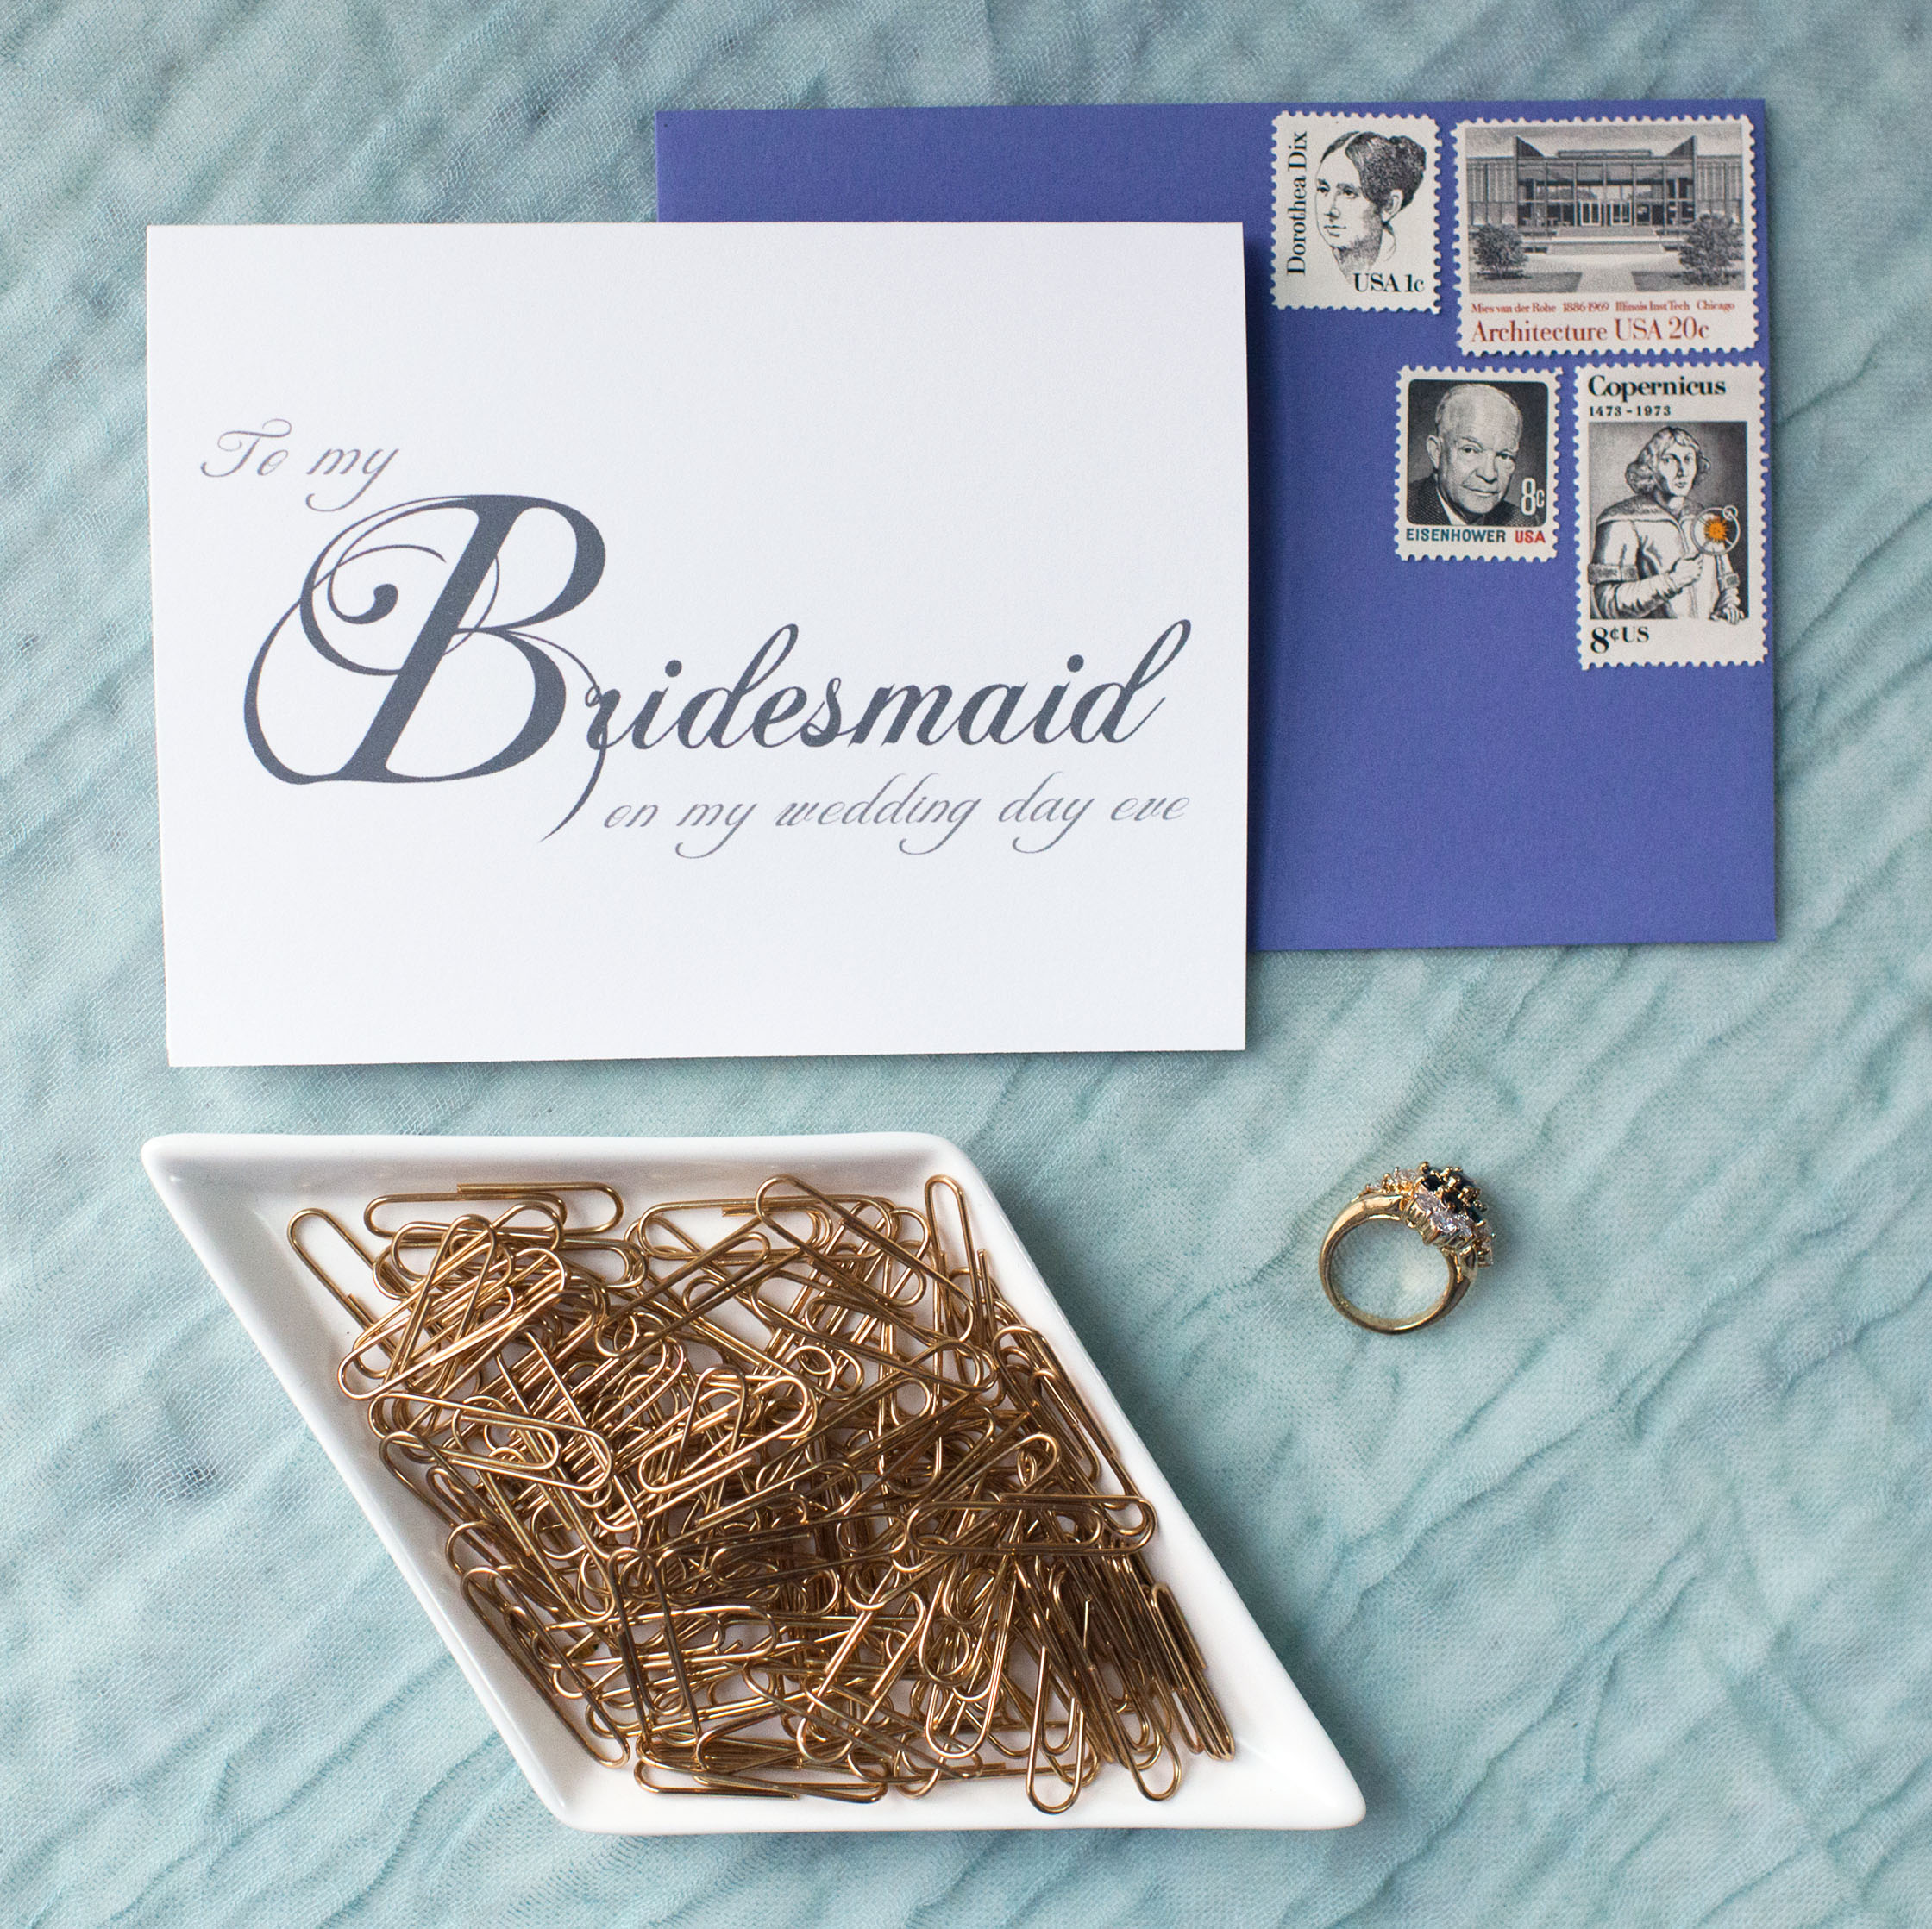 To My Bridesmaid On My Wedding Day Eve Card